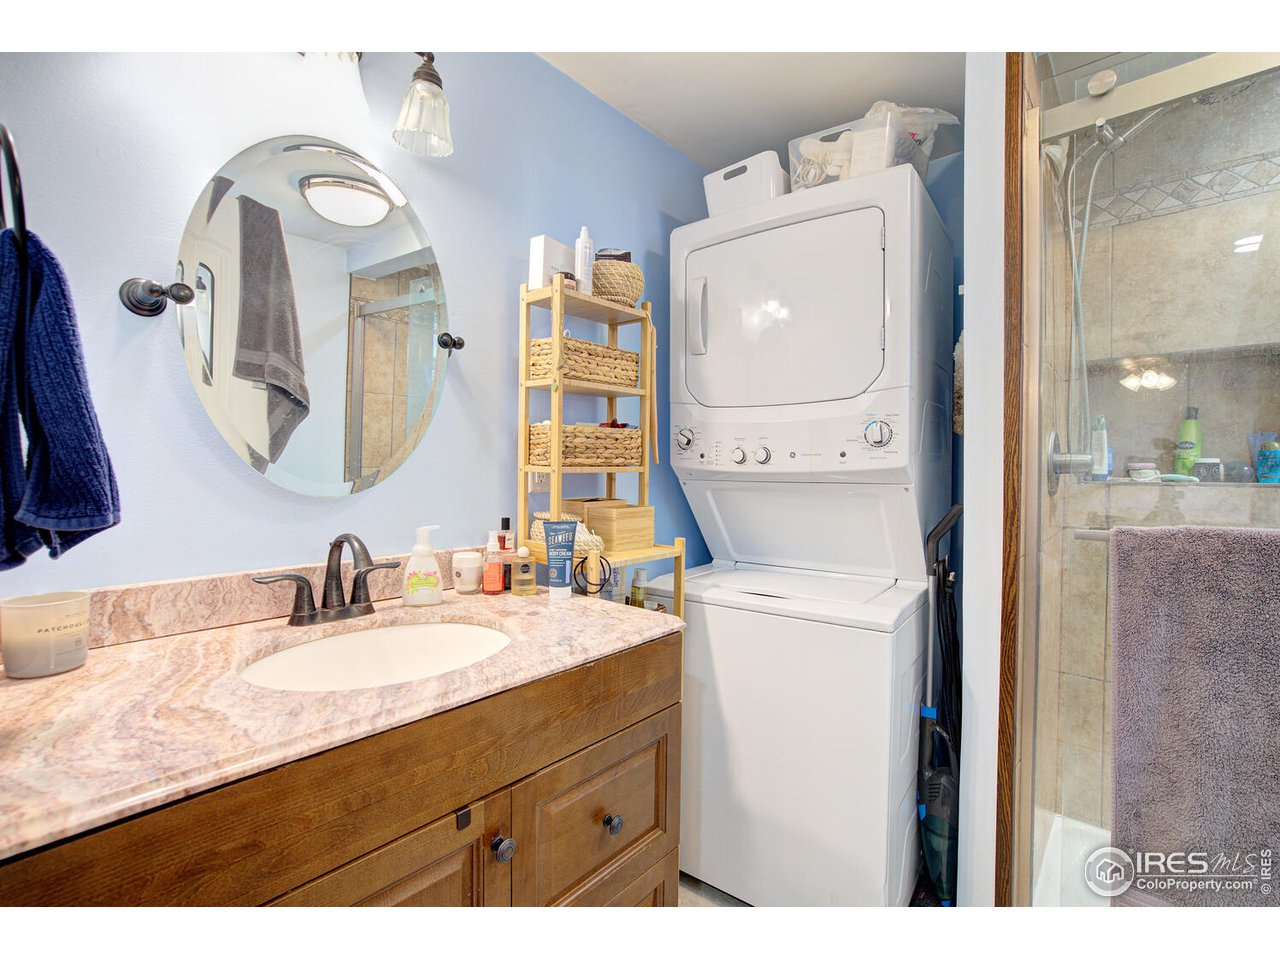 3/4 Bath and Laundry (included).